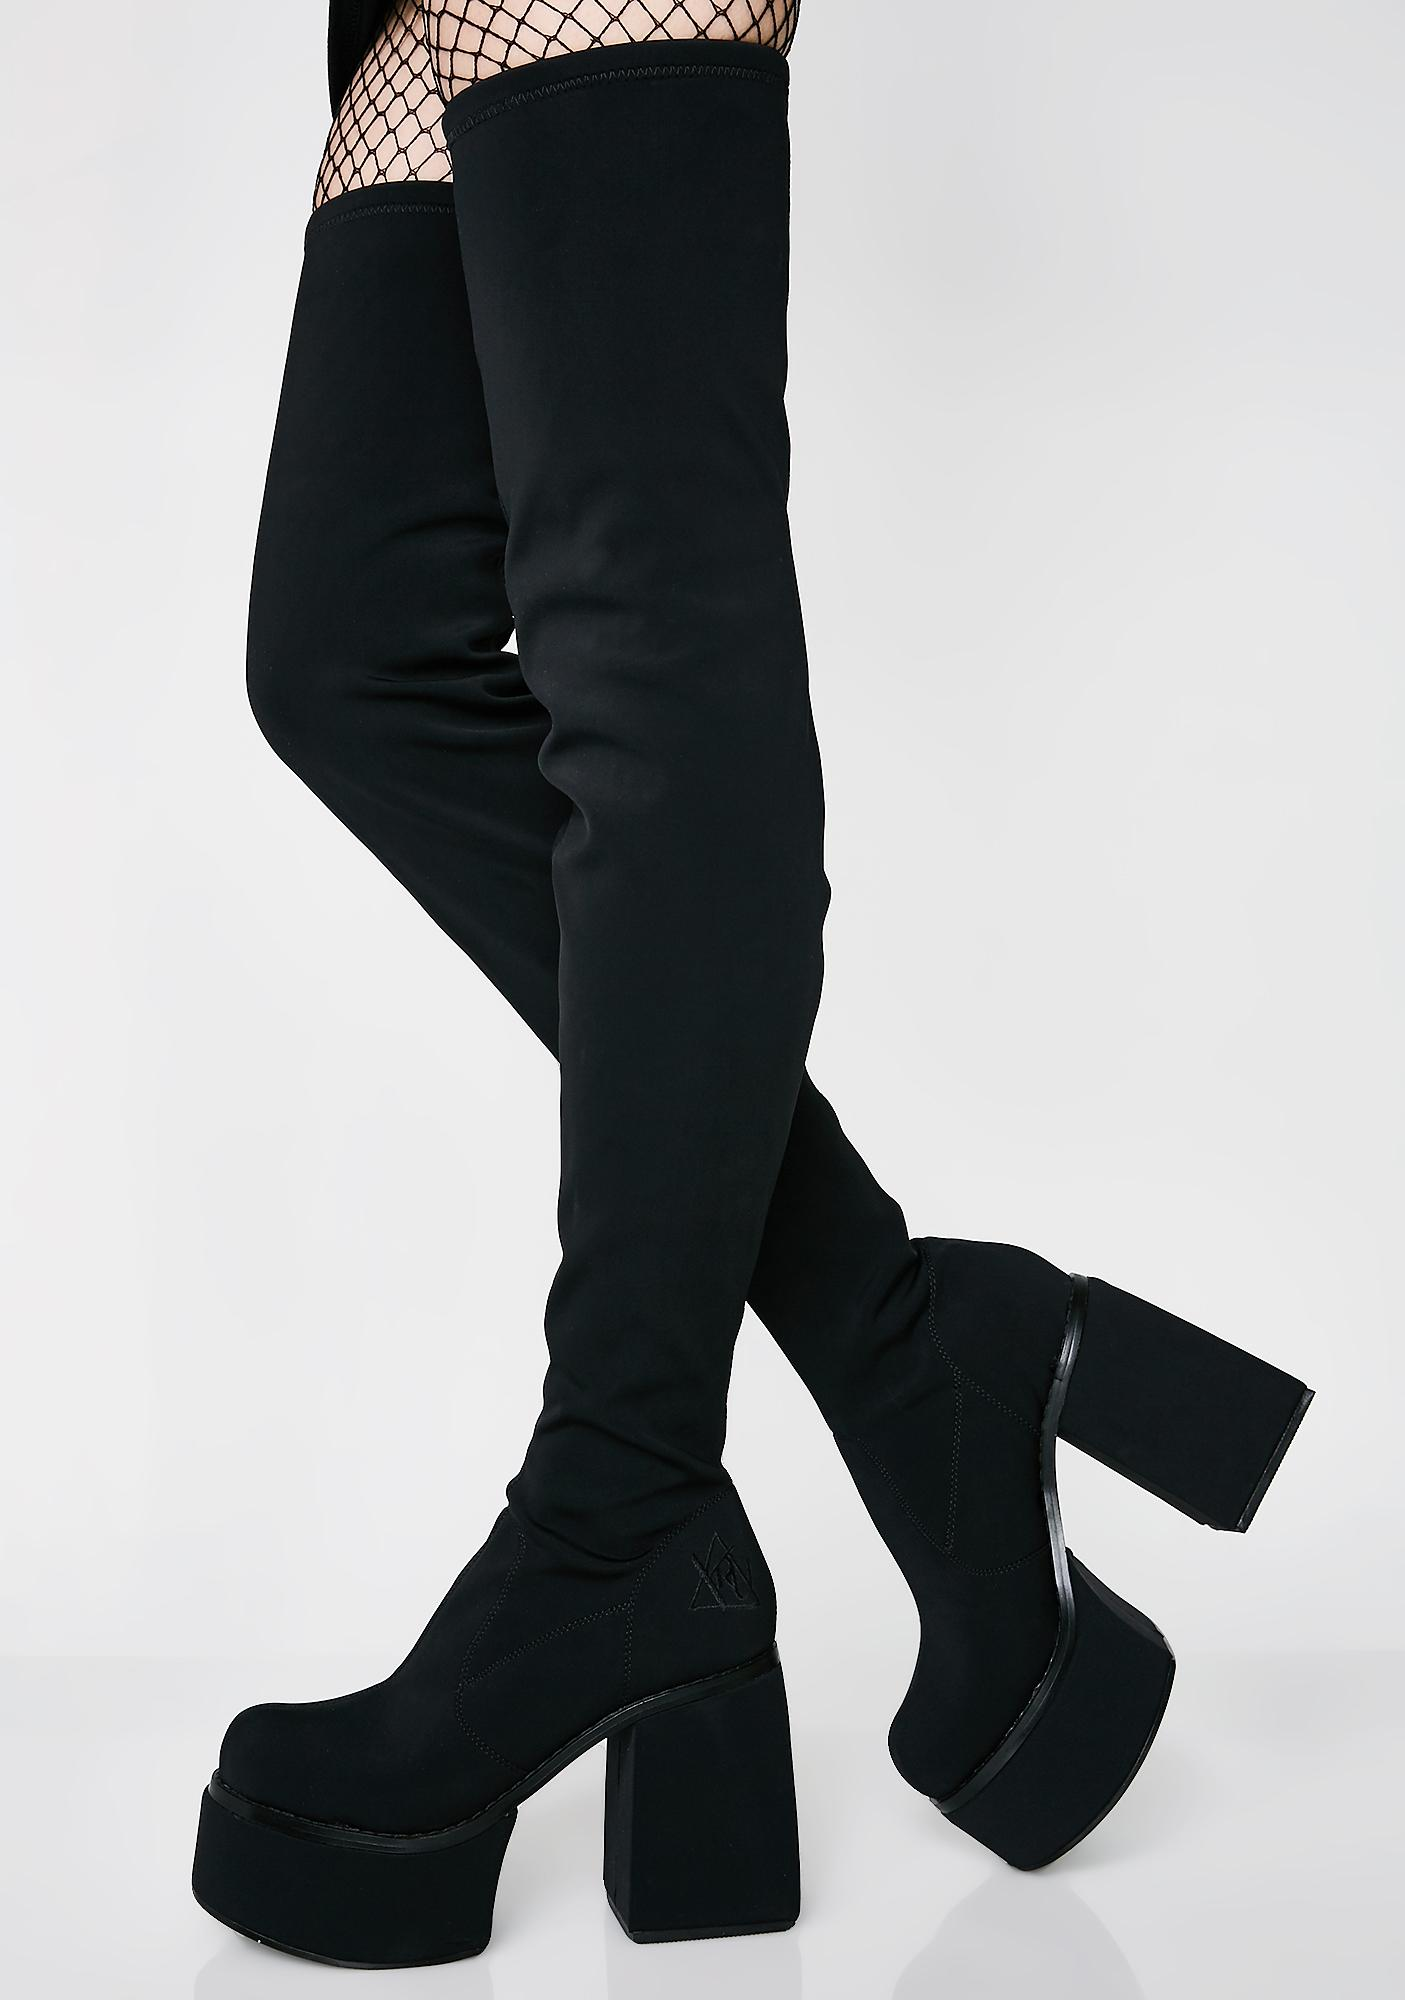 Y.R.U. Vida Thigh High Boots